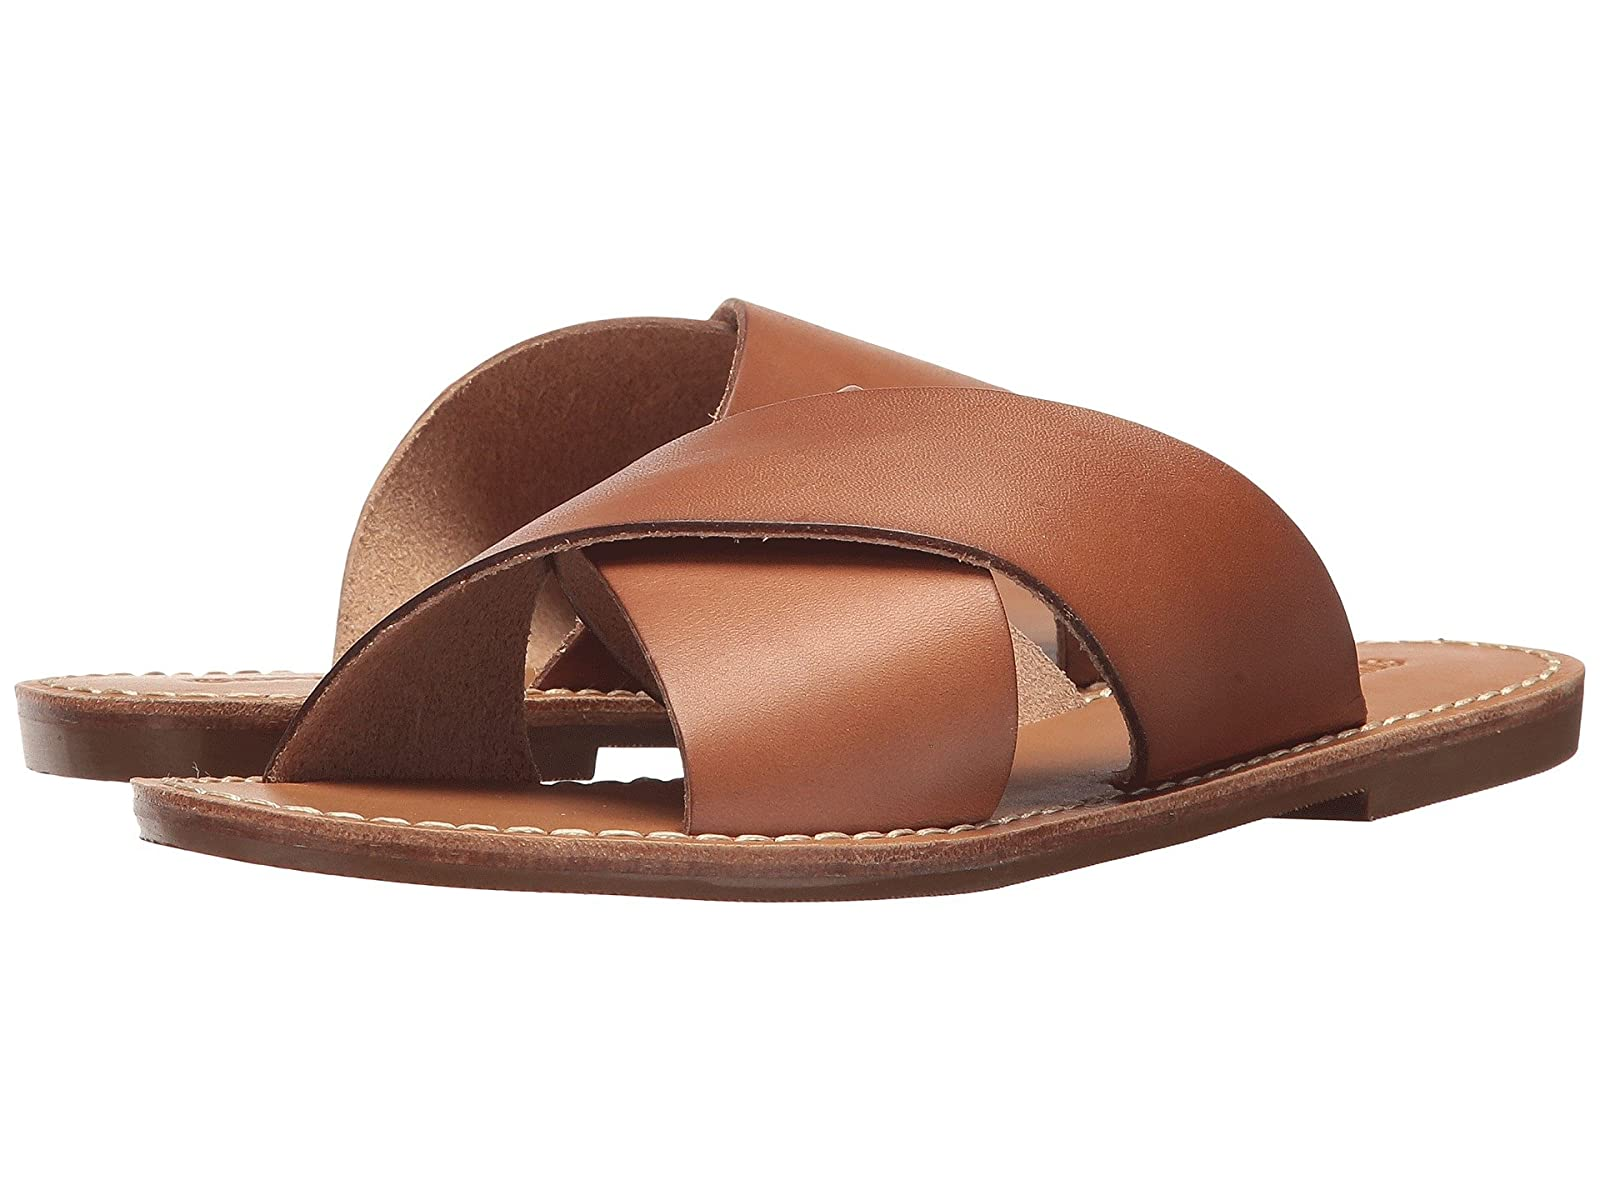 Soludos Crisscross SandalCheap and distinctive eye-catching shoes